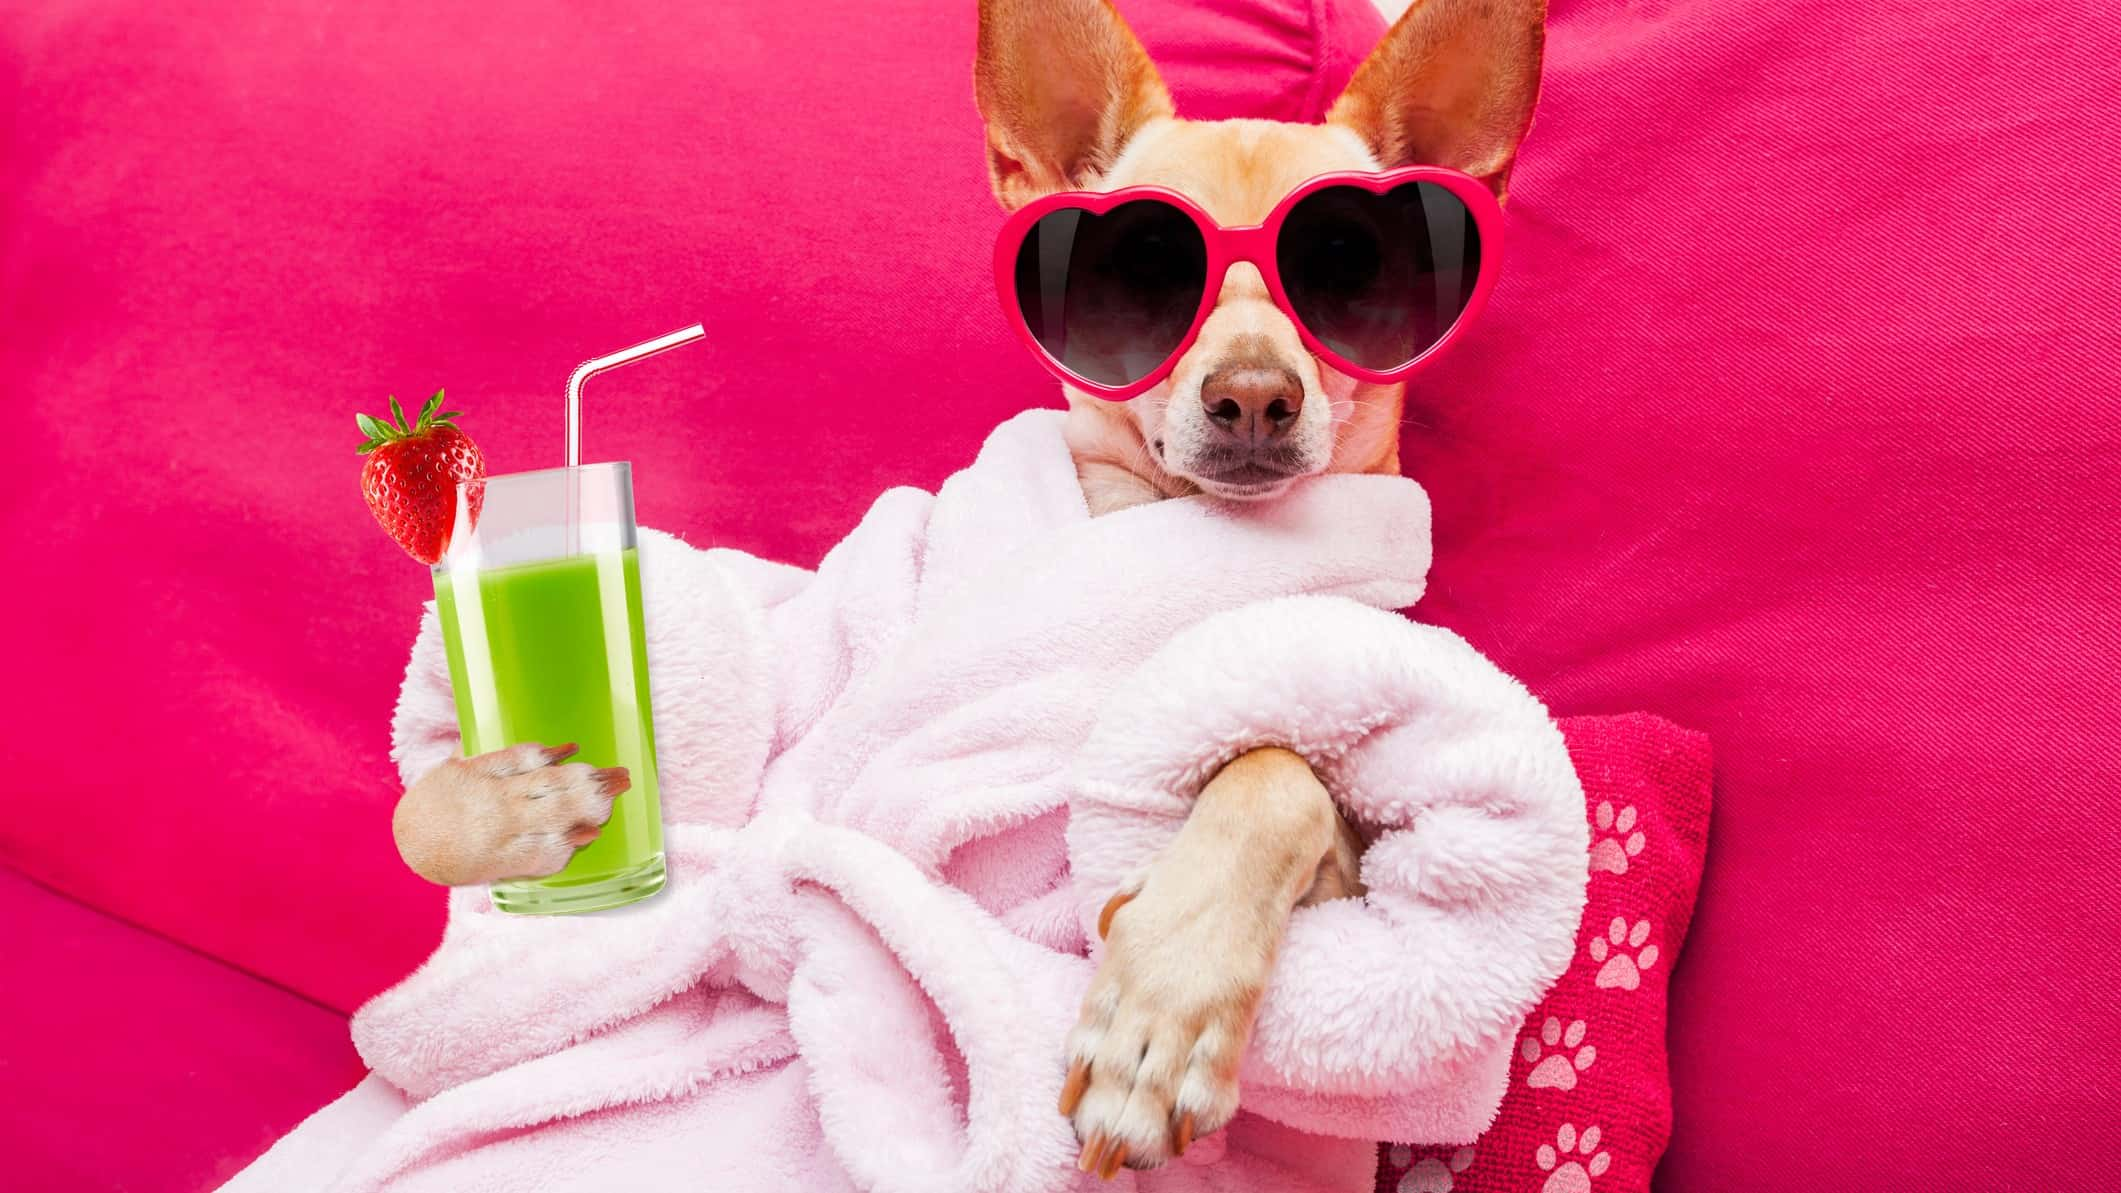 A little dog wearing sunglasses and bathrobe holding a cocktail, indicating a life of luxury enjoying passive income from cheap shares